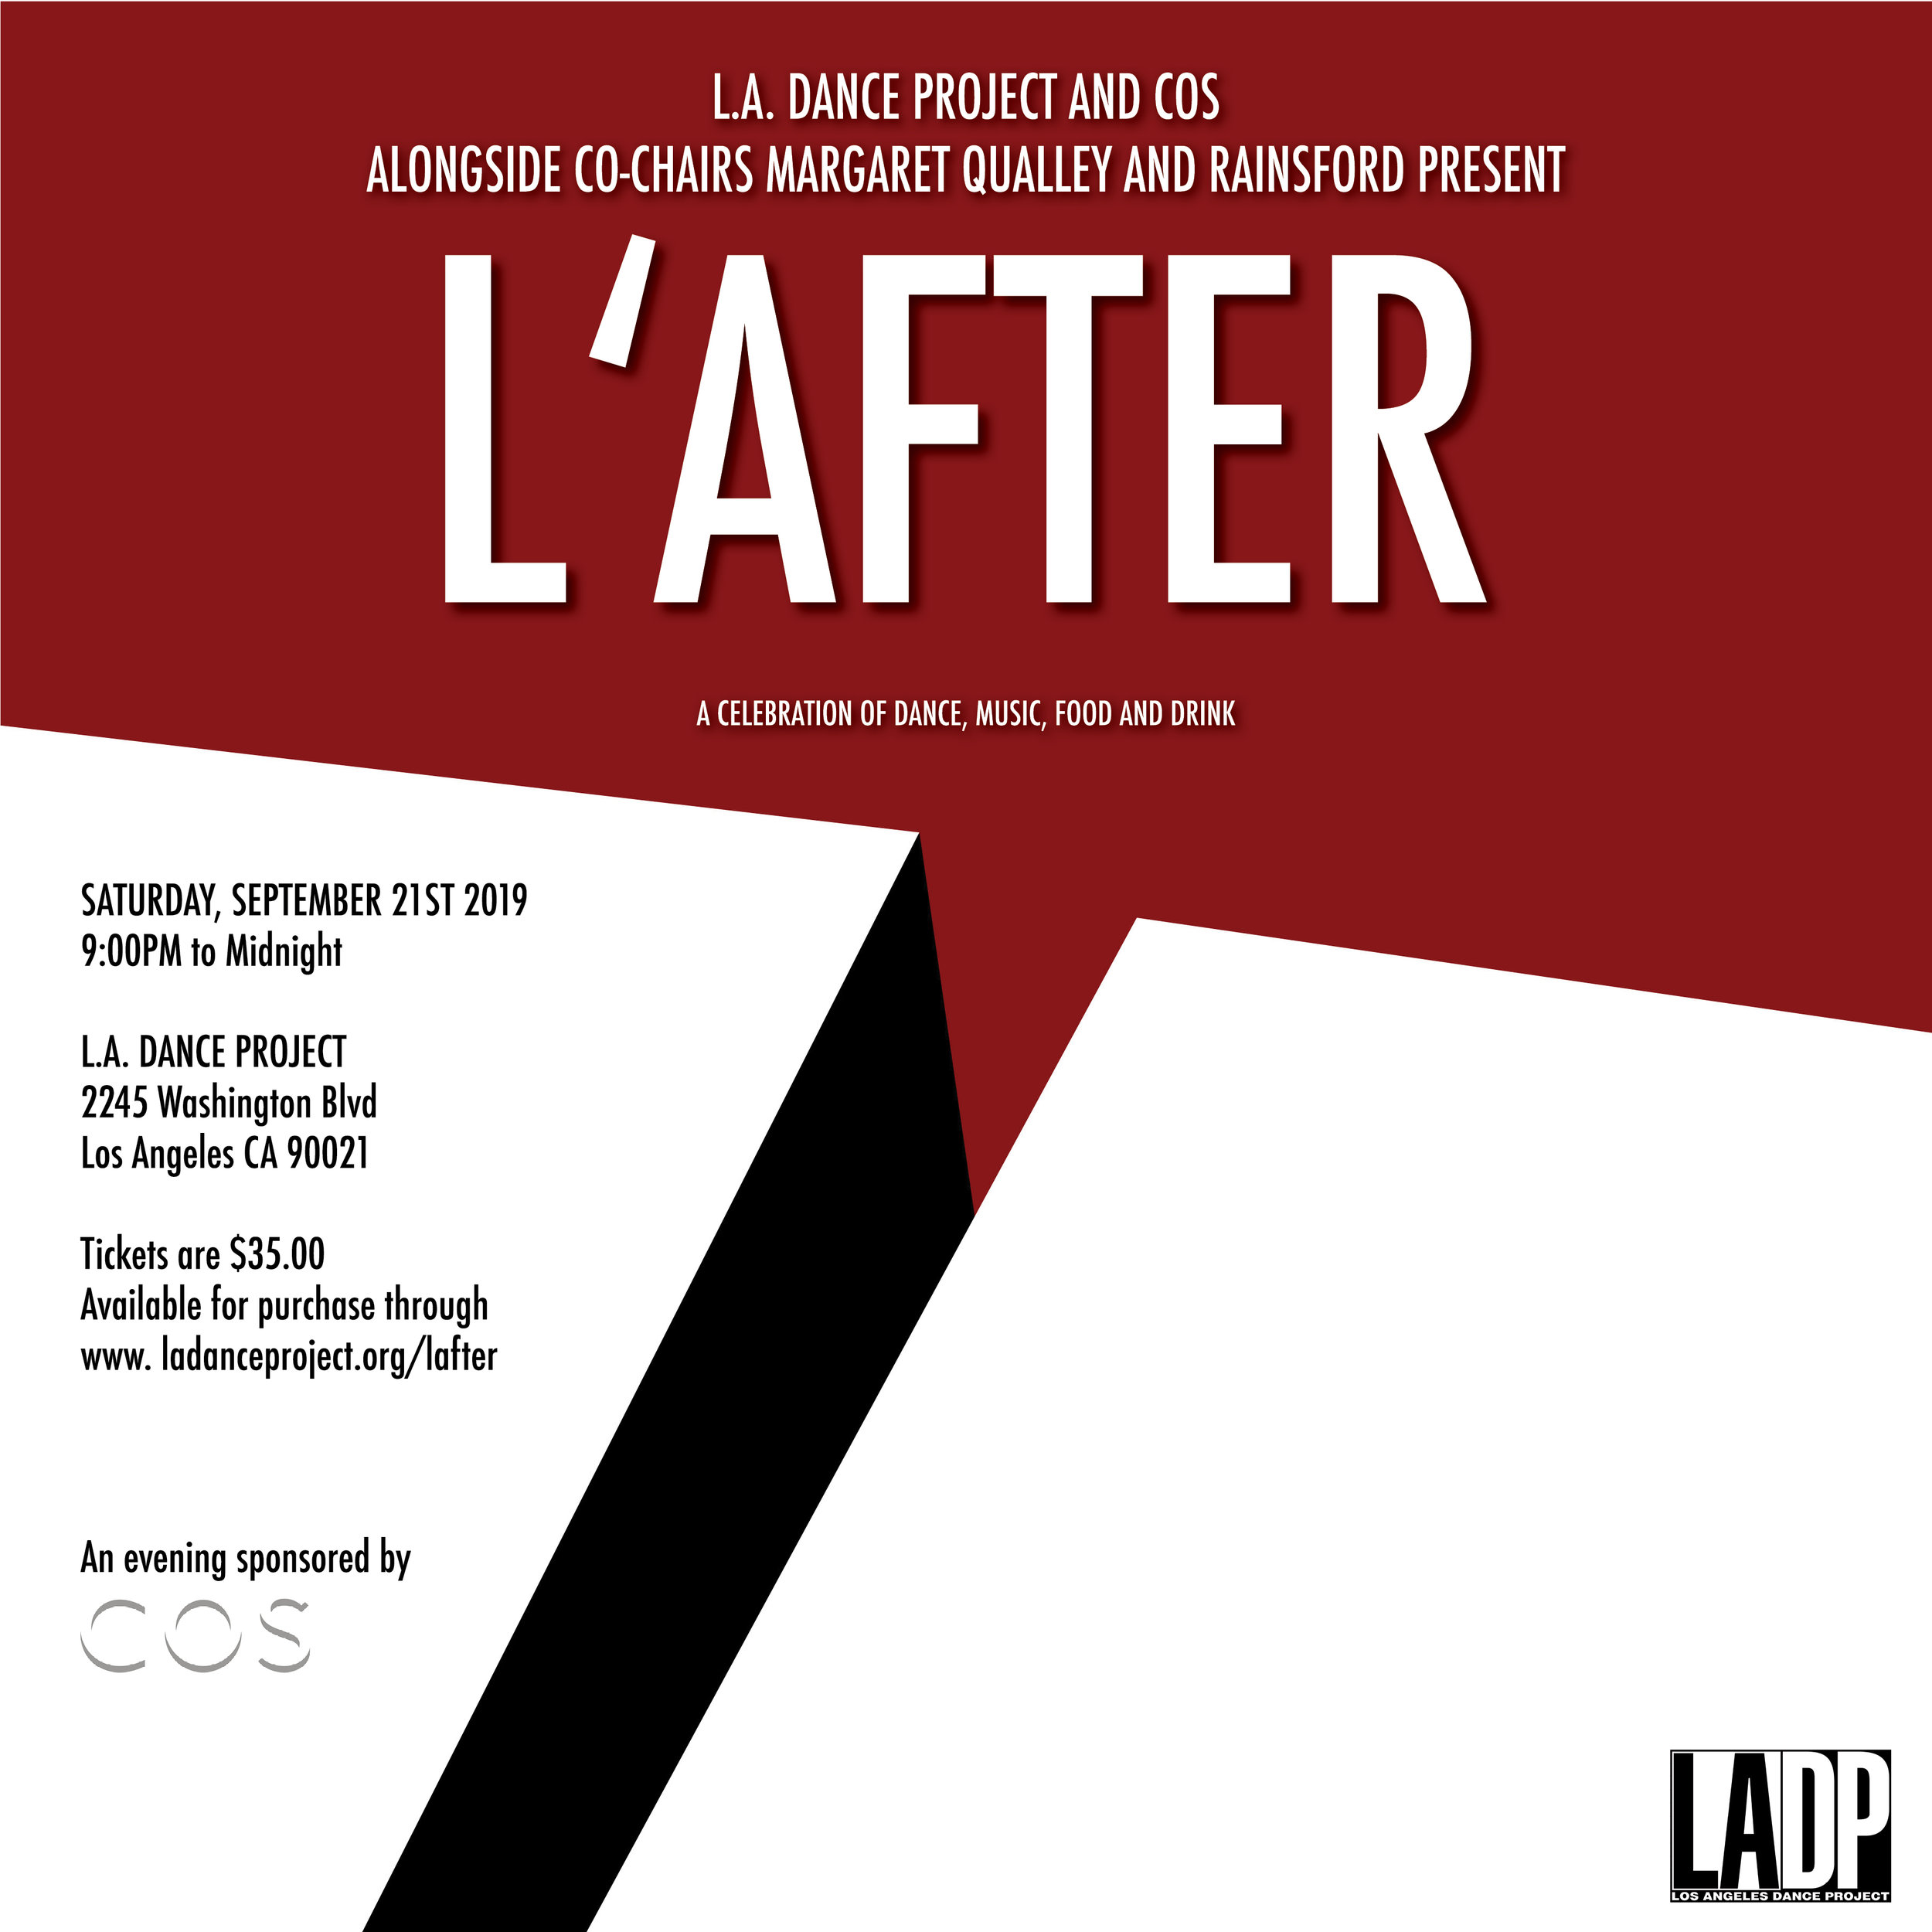 LADP thanks Tofer Chin for the invitation artwork.